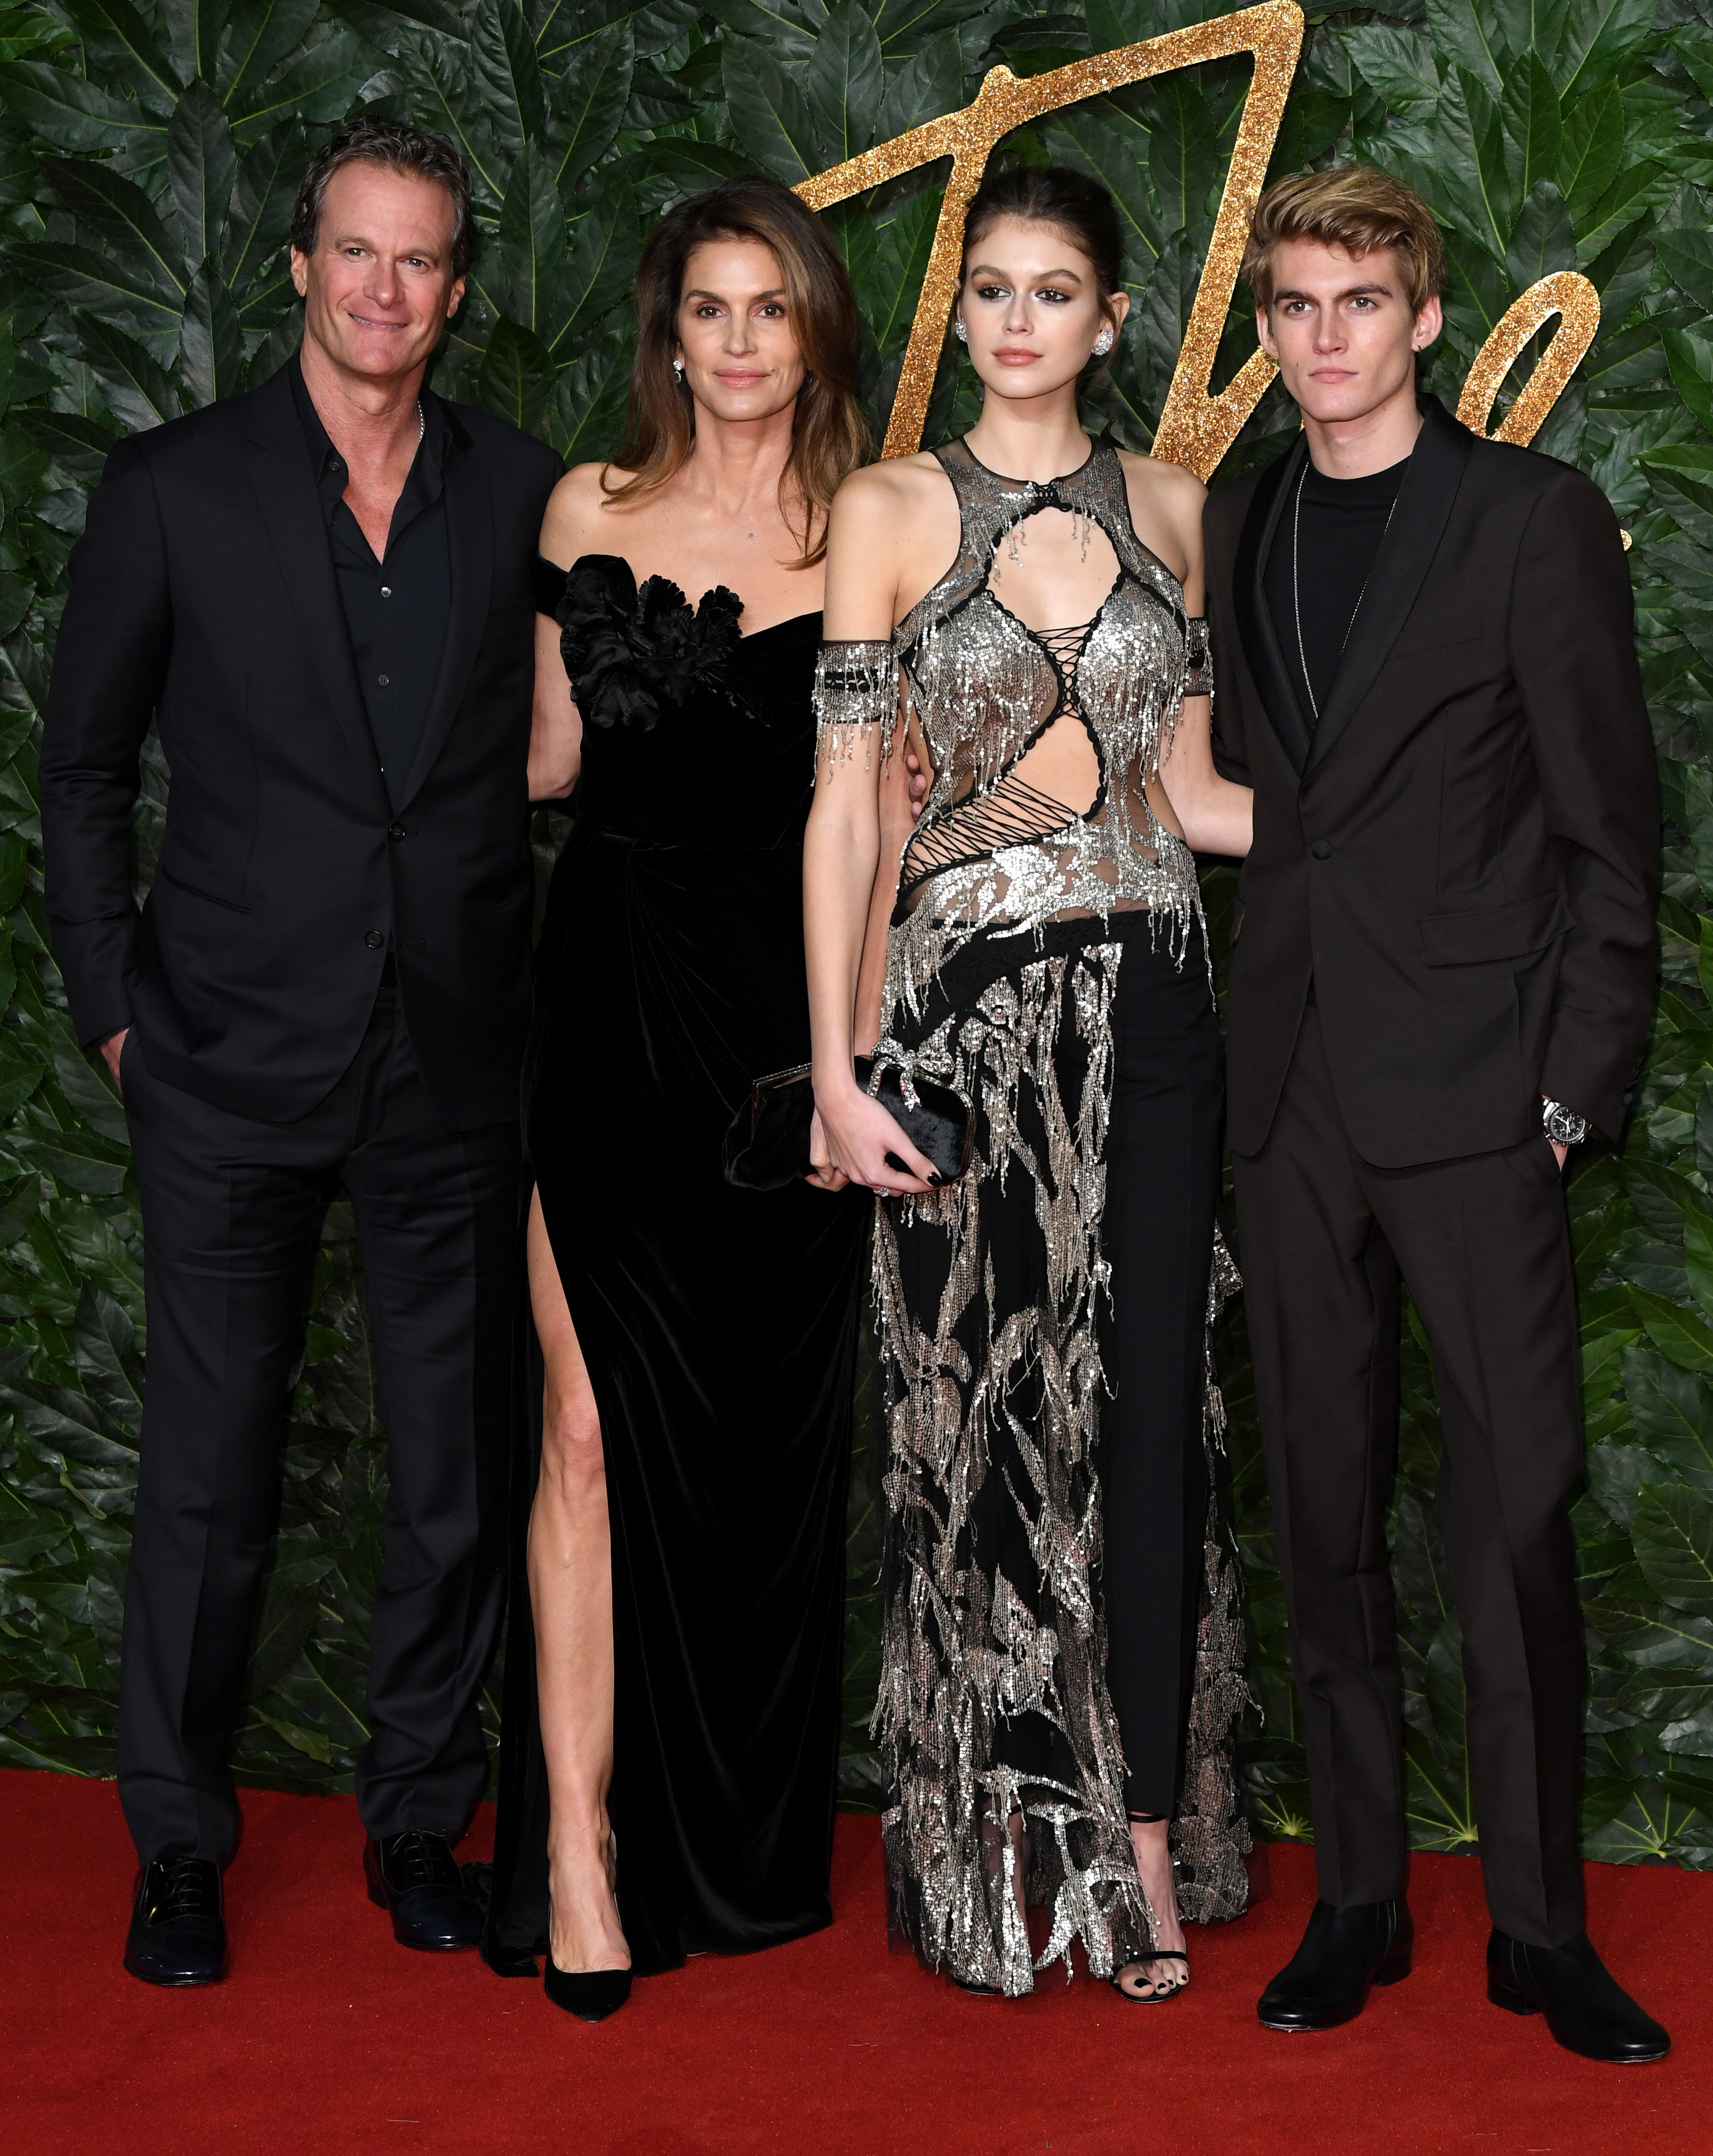 Rande Gerber, Cindy Crawford, Kaia Gerber and Presley Gerber attend the British Fashion Awards at Royal Albert Hall in London on Dec. 10, 2018.